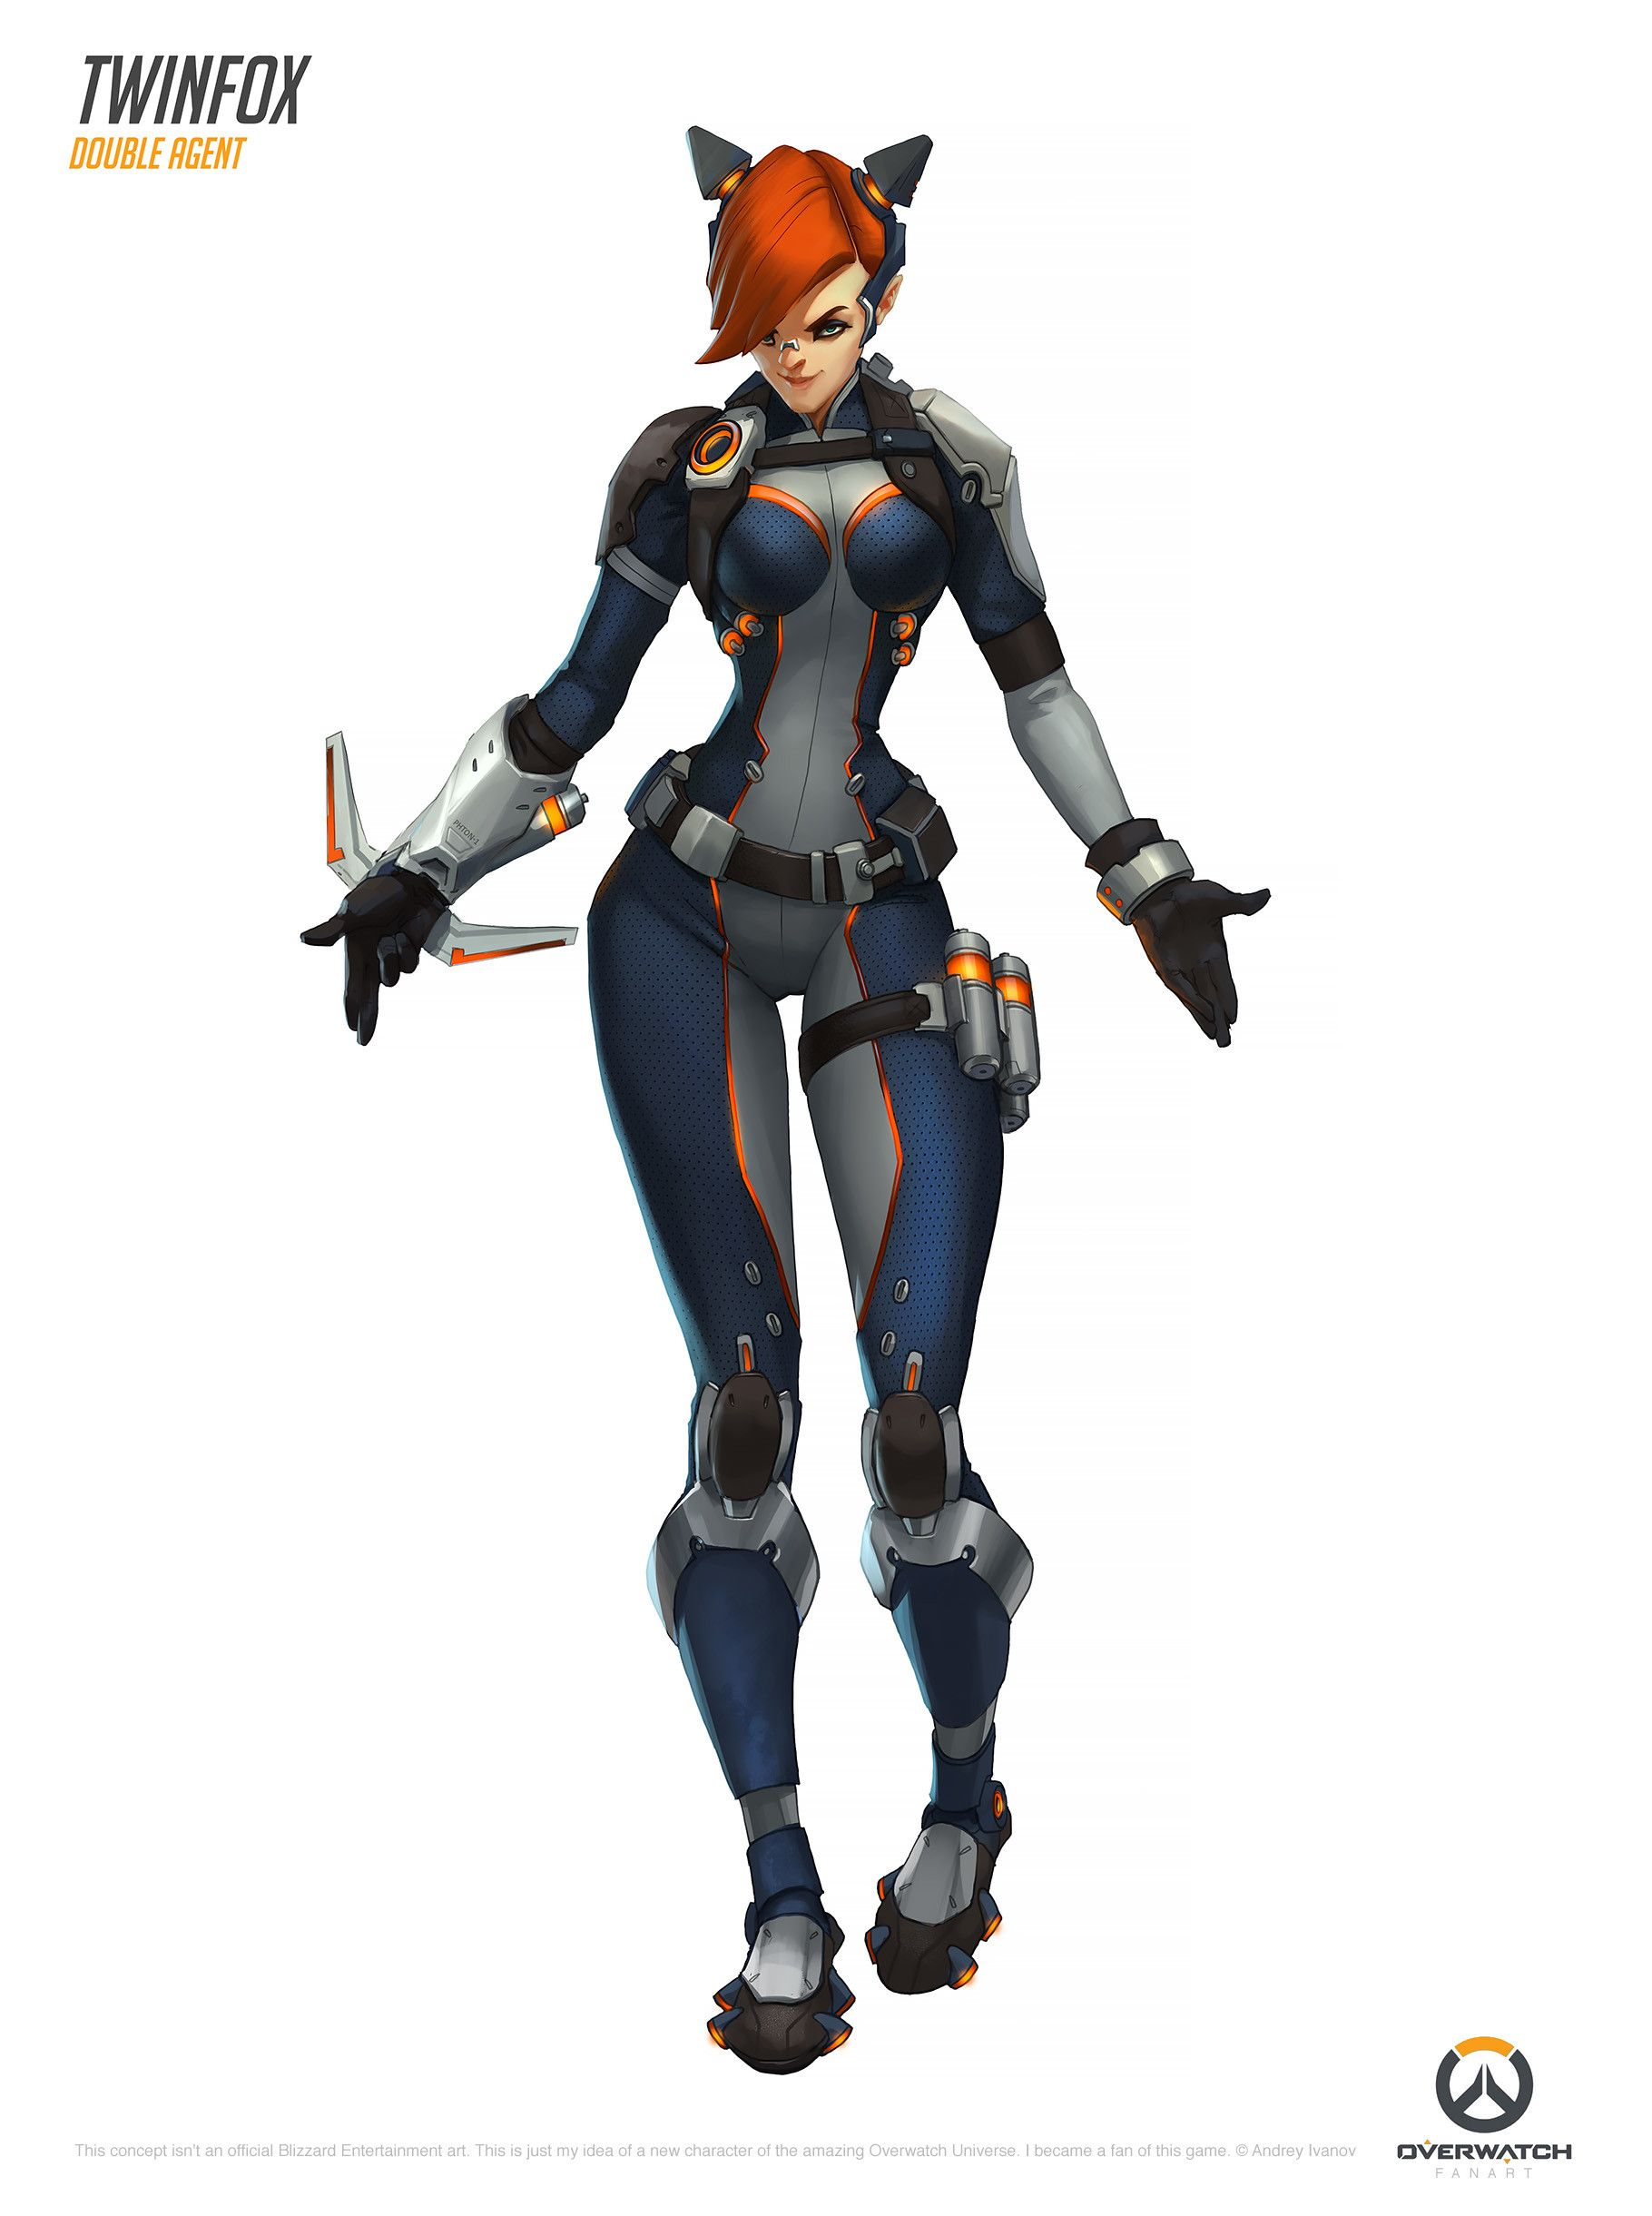 Character Design Overwatch : Story an unknown agent which appeared on the peak of